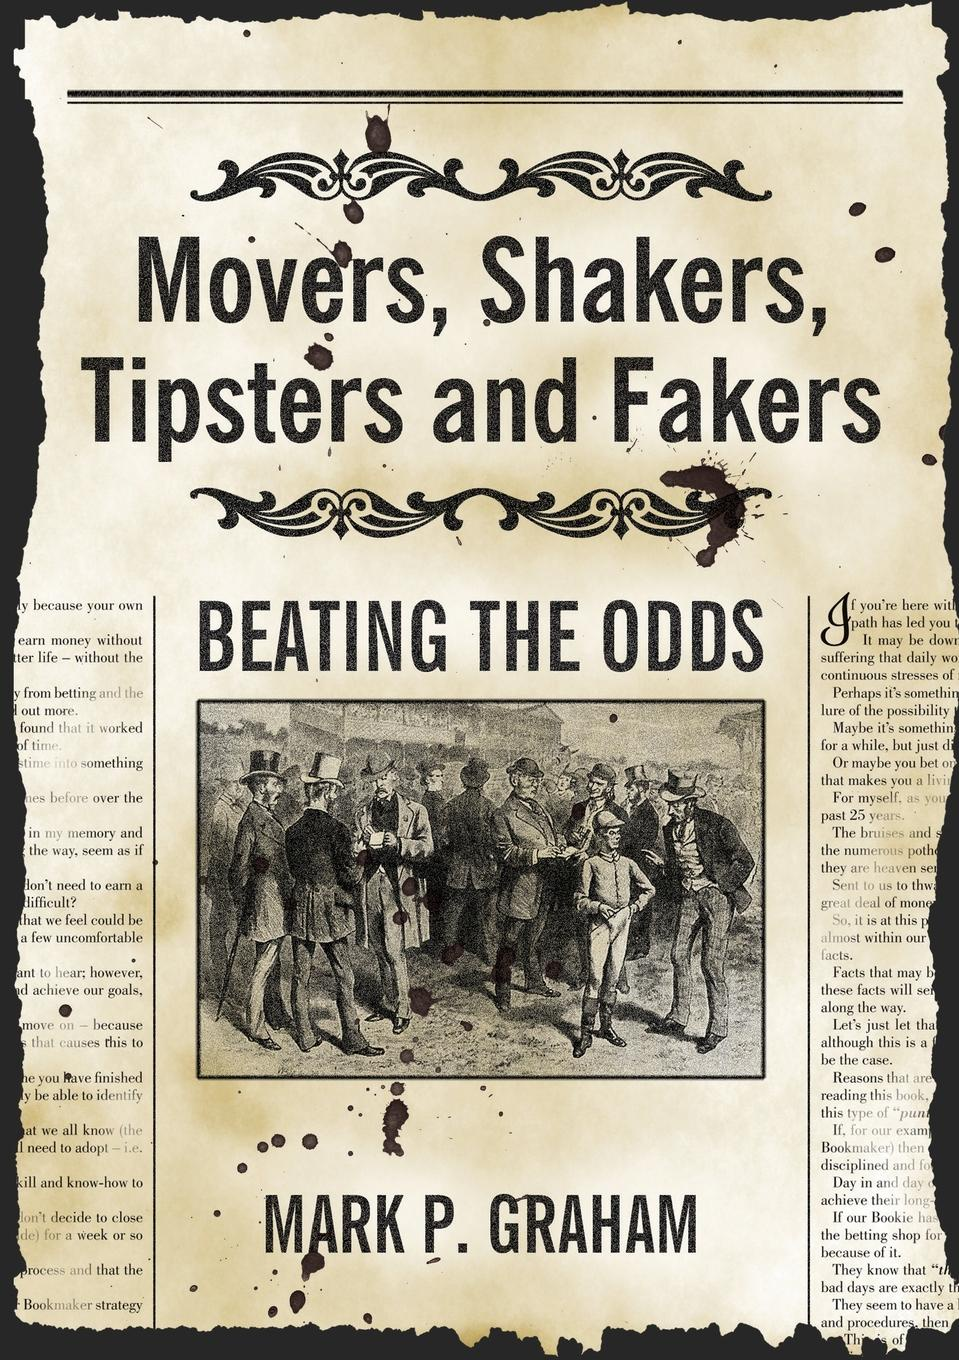 Mark P. Graham. Movers, Shakers, Tipsters and Fakers. Beating the Odds